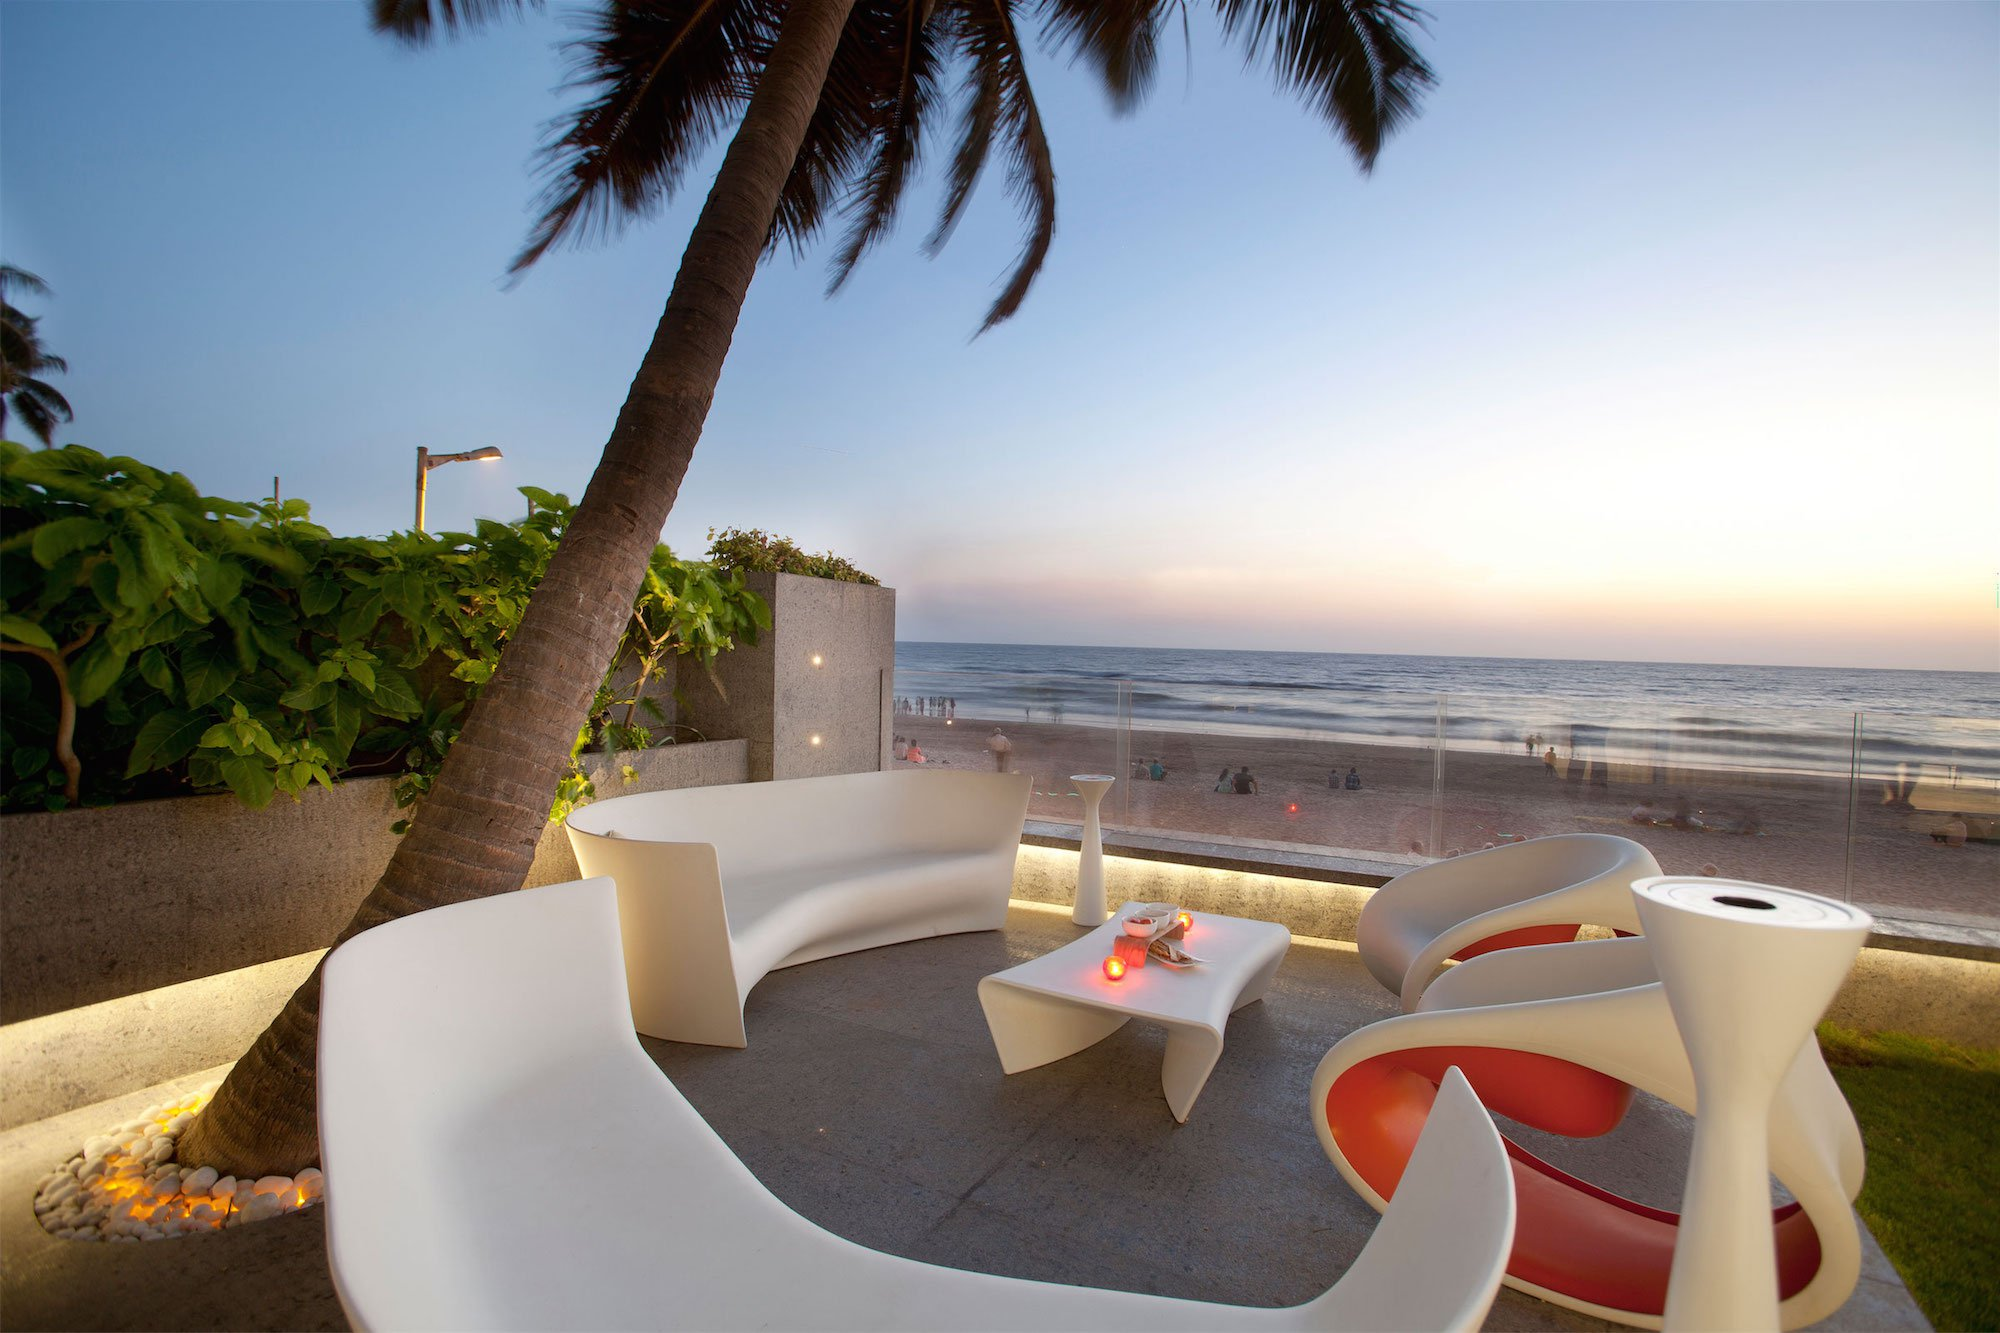 Apartment-by-the-Beach-11